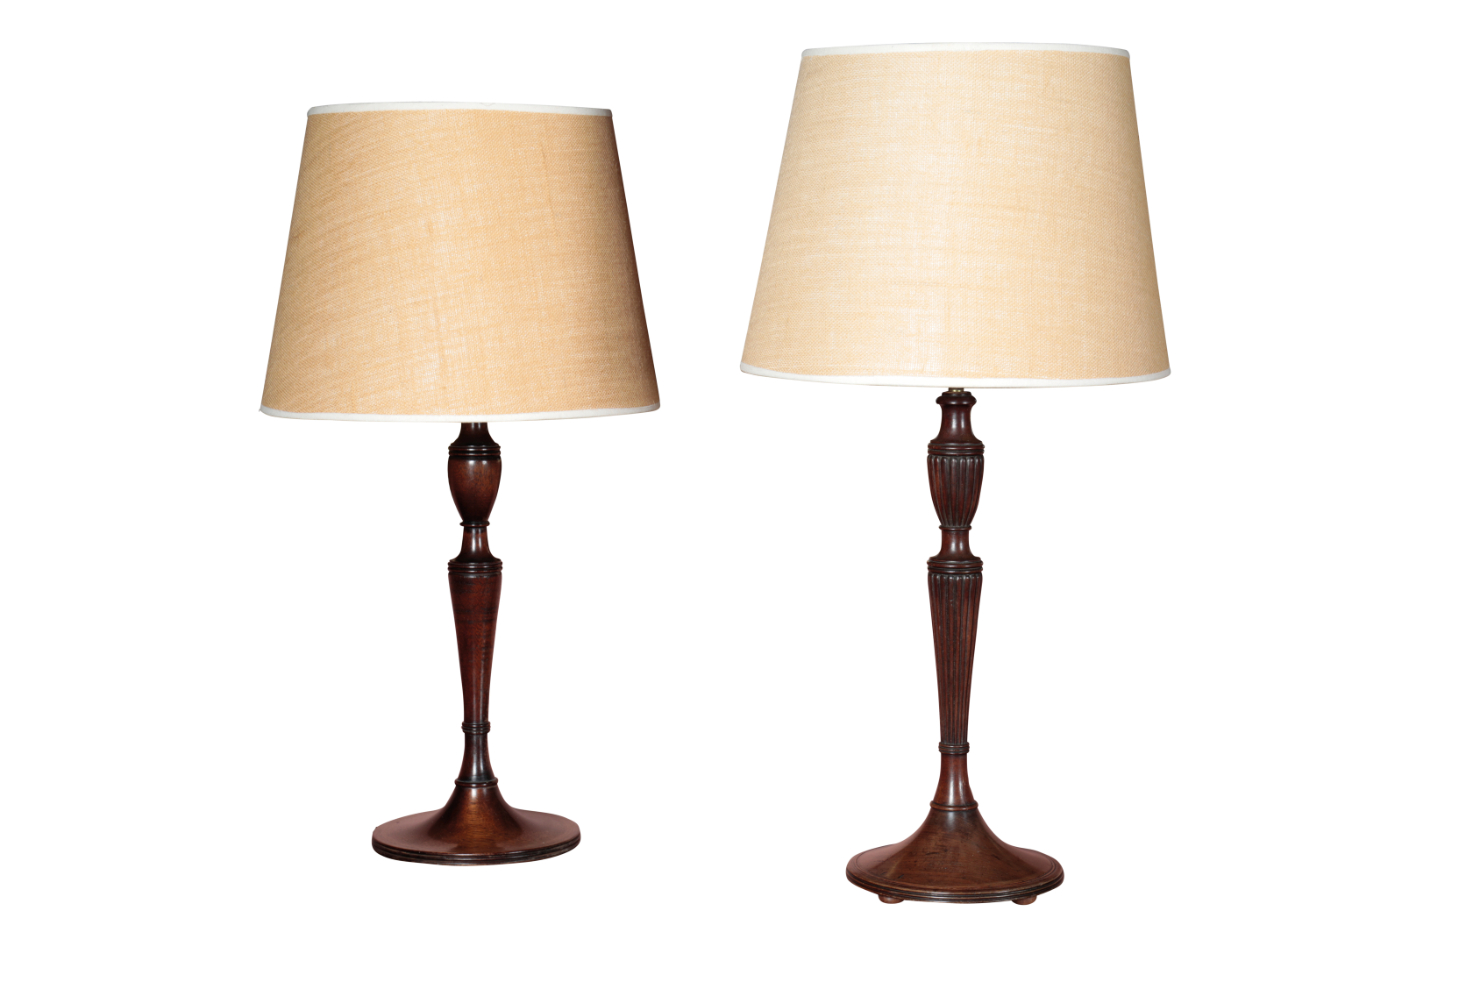 TWO SIMILAR STAINED WOOD TABLE LAMPS, IN GEORGE III TASTE,